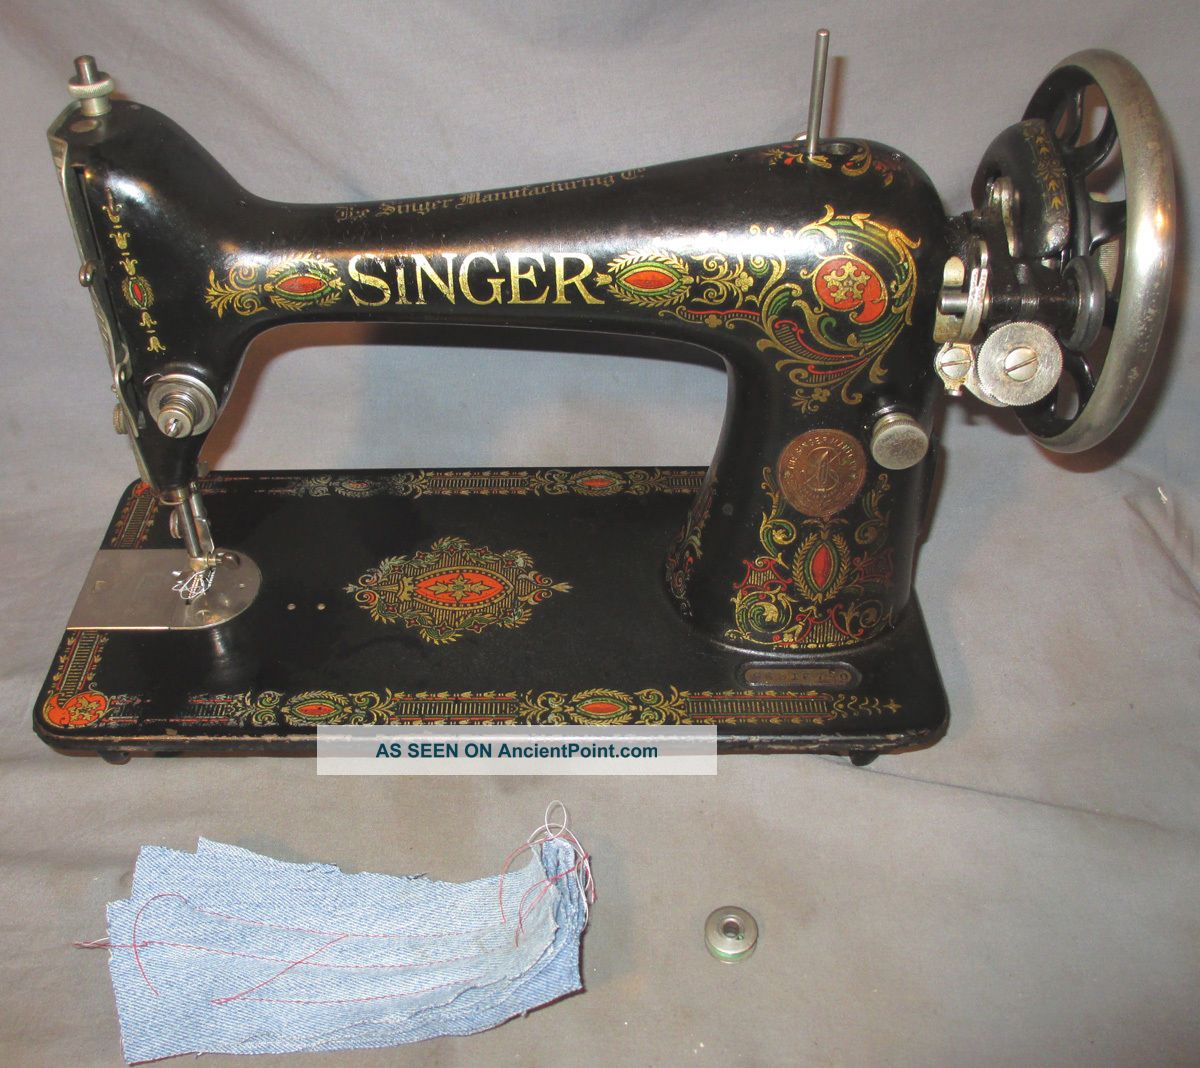 Serviced Antique 1919 Singer 66 66 - 1 Red Eye Treadle Sewing Machine See Video Sewing Machines photo